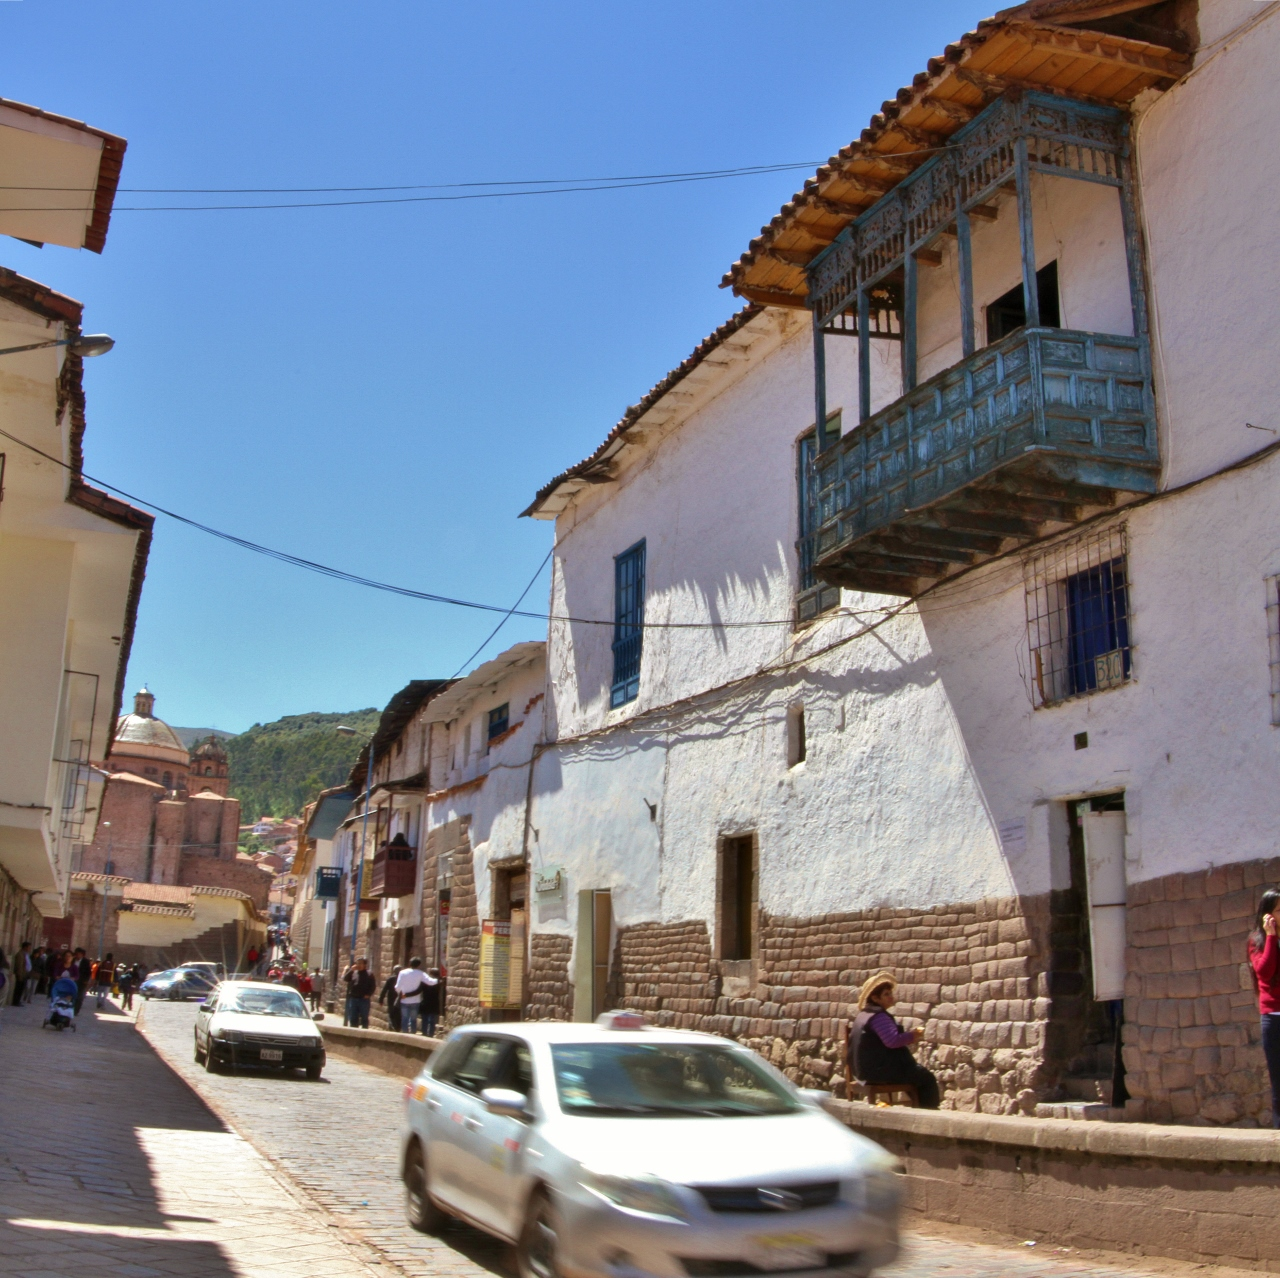 Typical Cusco street. You can see the Spanish colonial-style architecture atop indigenous-built foundations